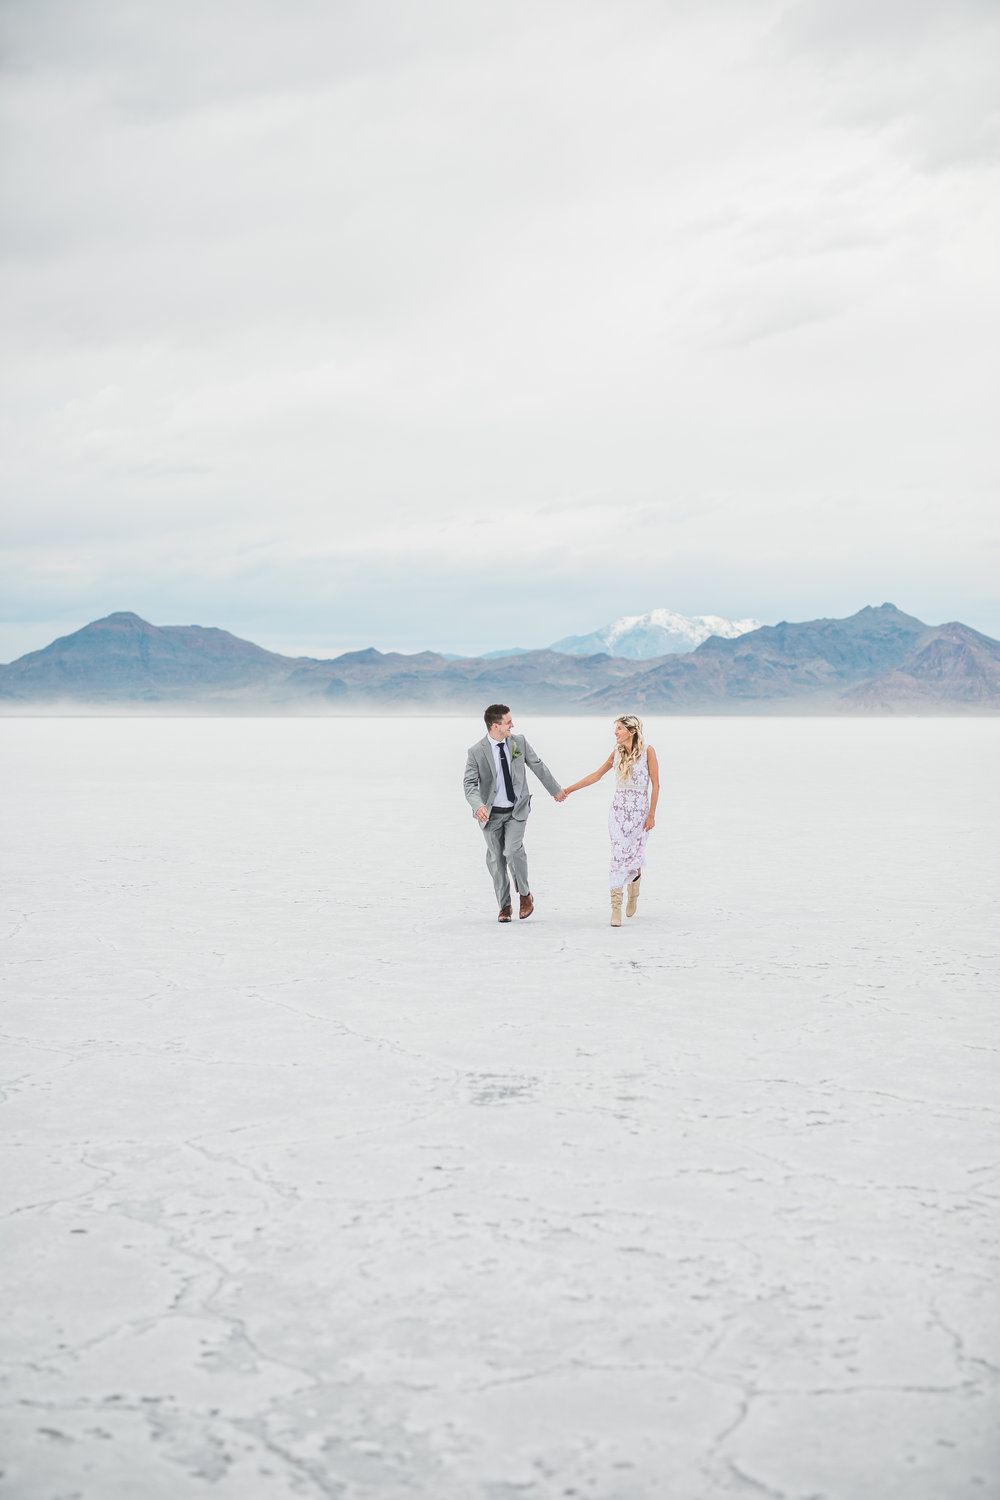 Bonneville Salt Flats adventure elopement photographers Kyle Loves Tori Photography